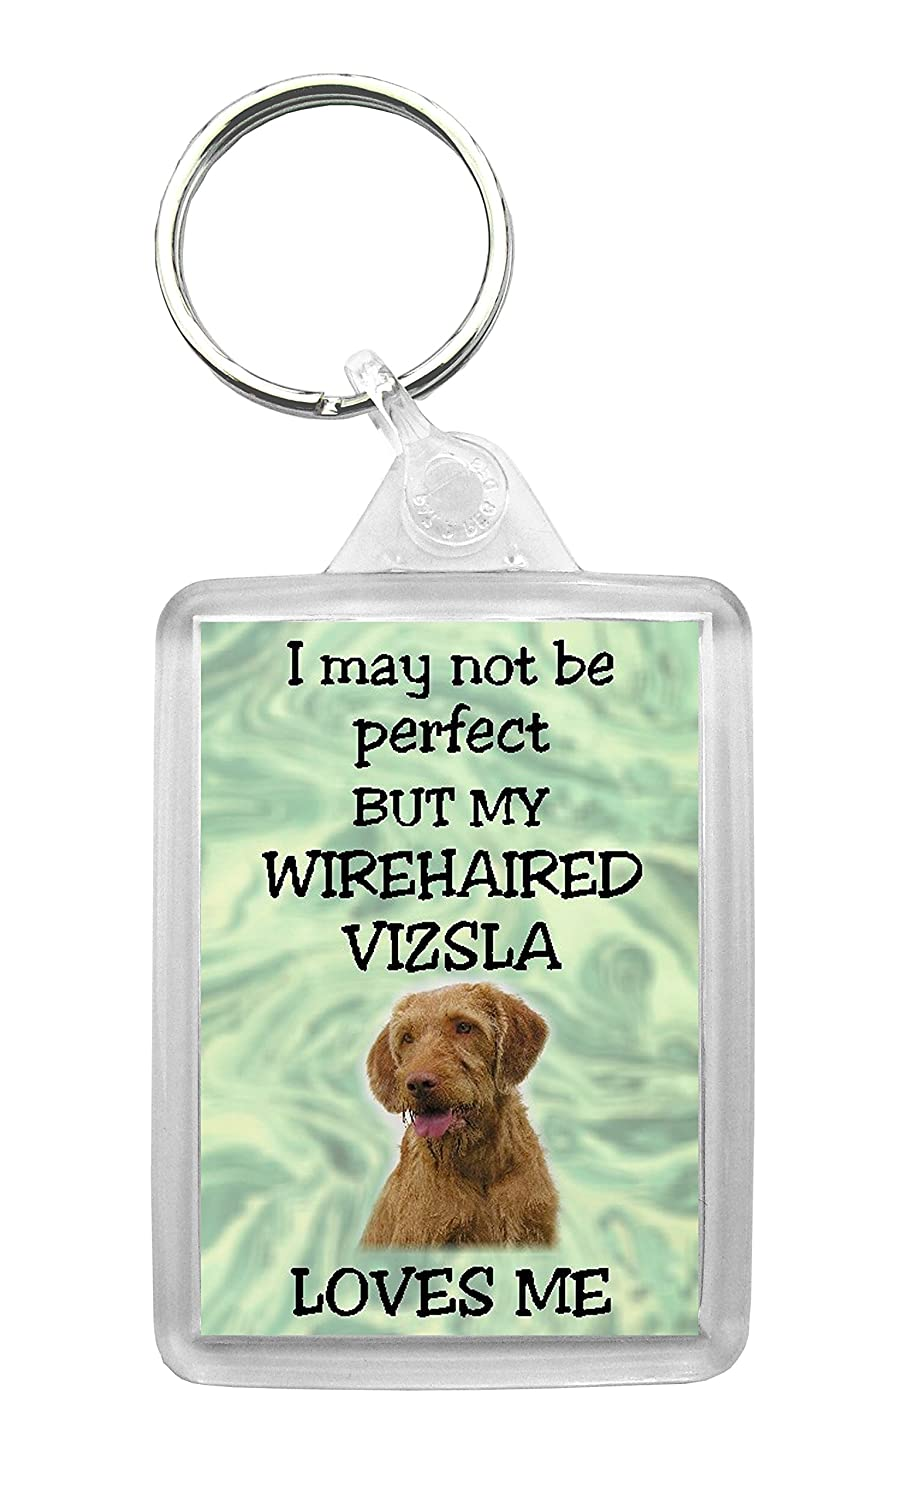 """Hungarian Wirehaired Vizsla Fridge Magnet /""""I may not be perfect ../"""" by Starprint"""